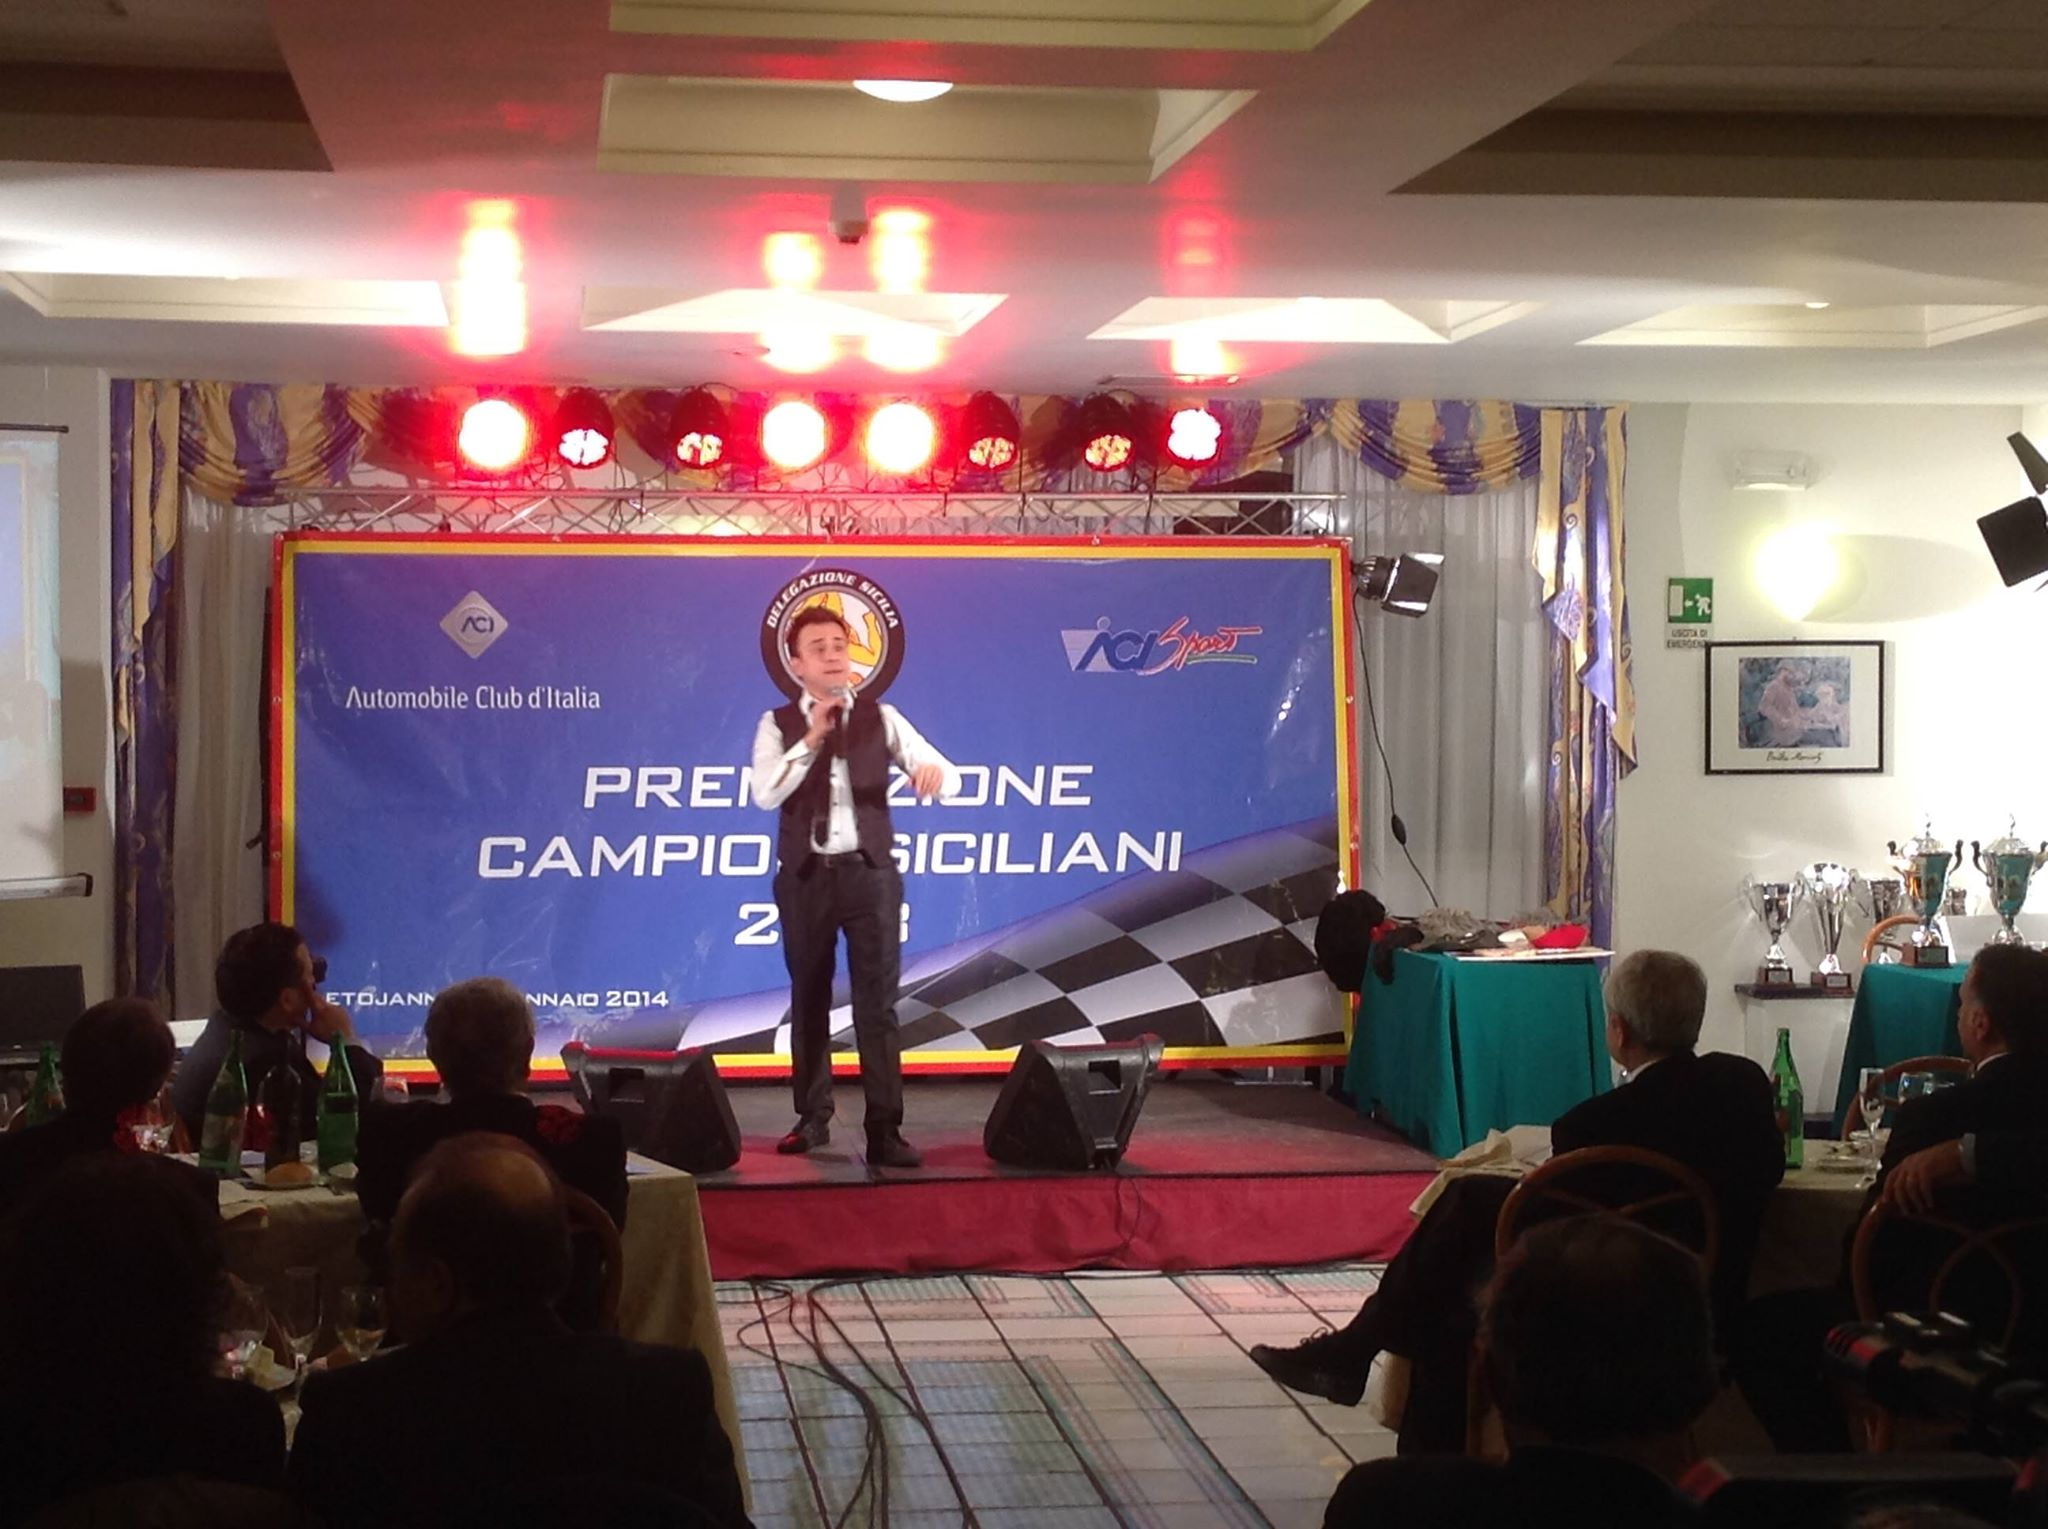 FIERE CONGRESSI MEETING MAGIC SOUND DI DOMINGO CRISAFULLI SICILIA ACI GENNARO CABARET INCONTRO AZIENDALE CENA EVENTO